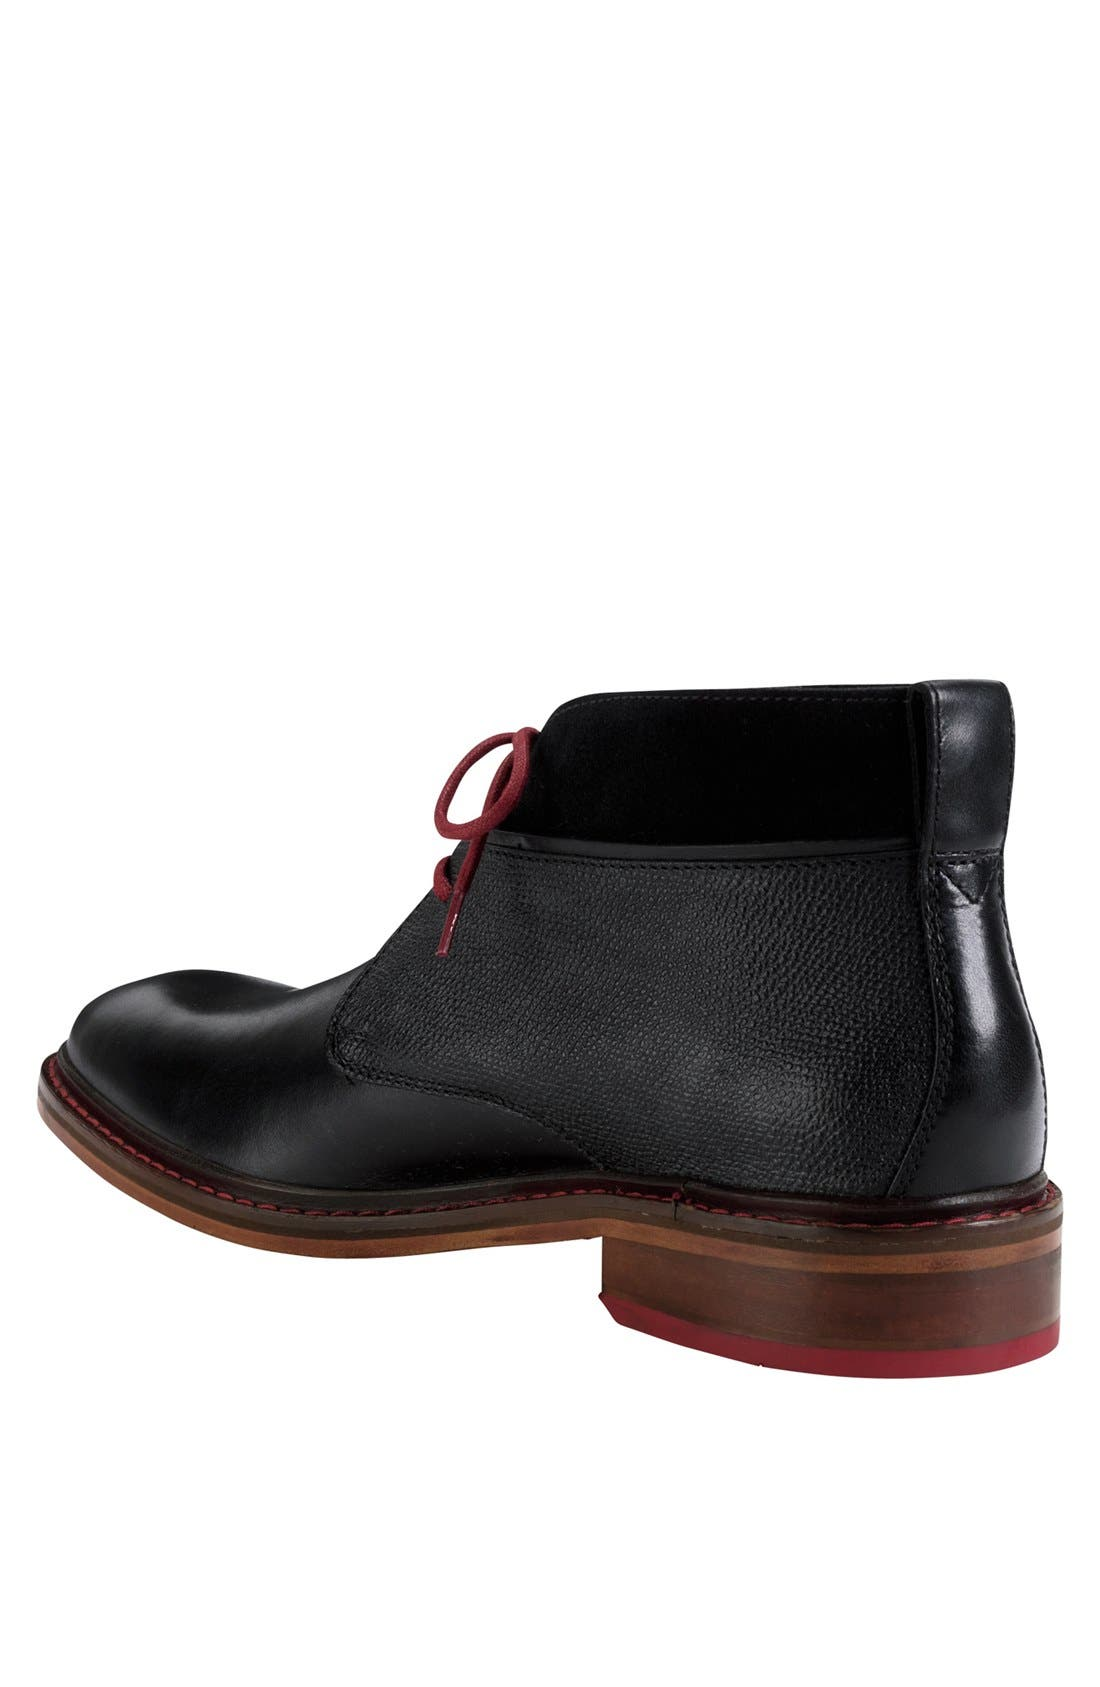 Alternate Image 2  - Cole Haan 'Colton' Chukka Boot (Men)